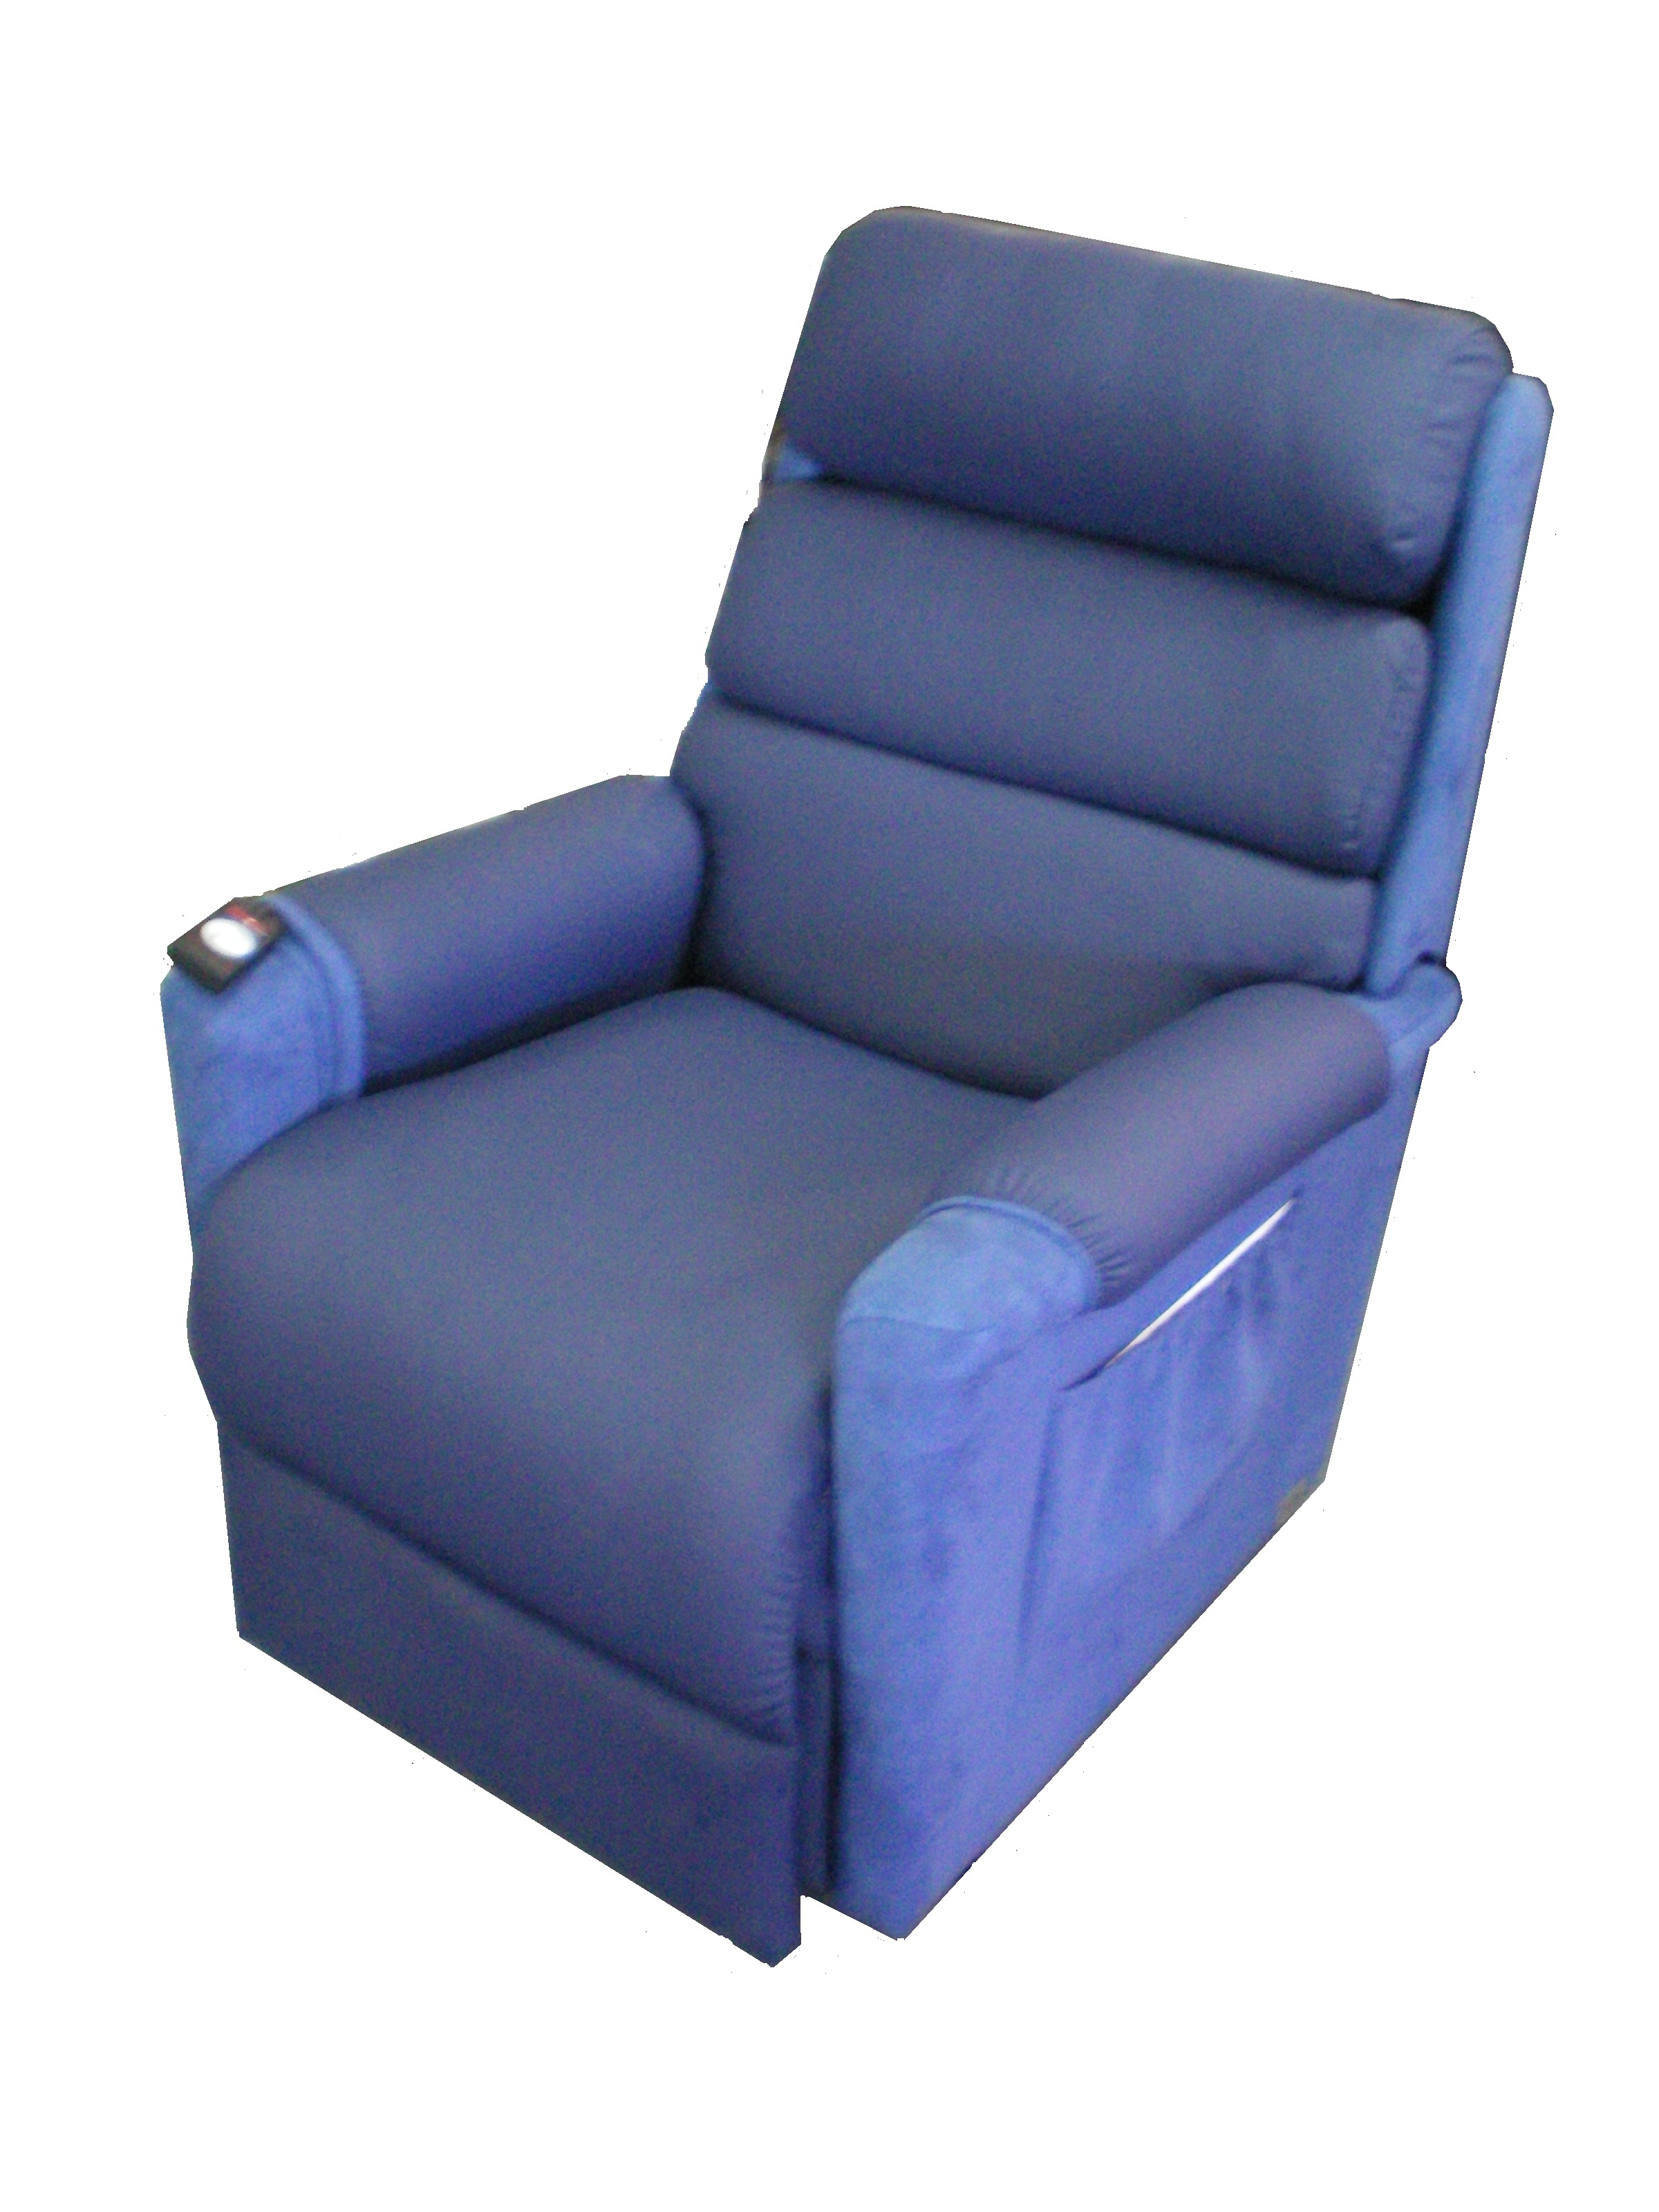 Electric Reclining Chairs For The Elderly